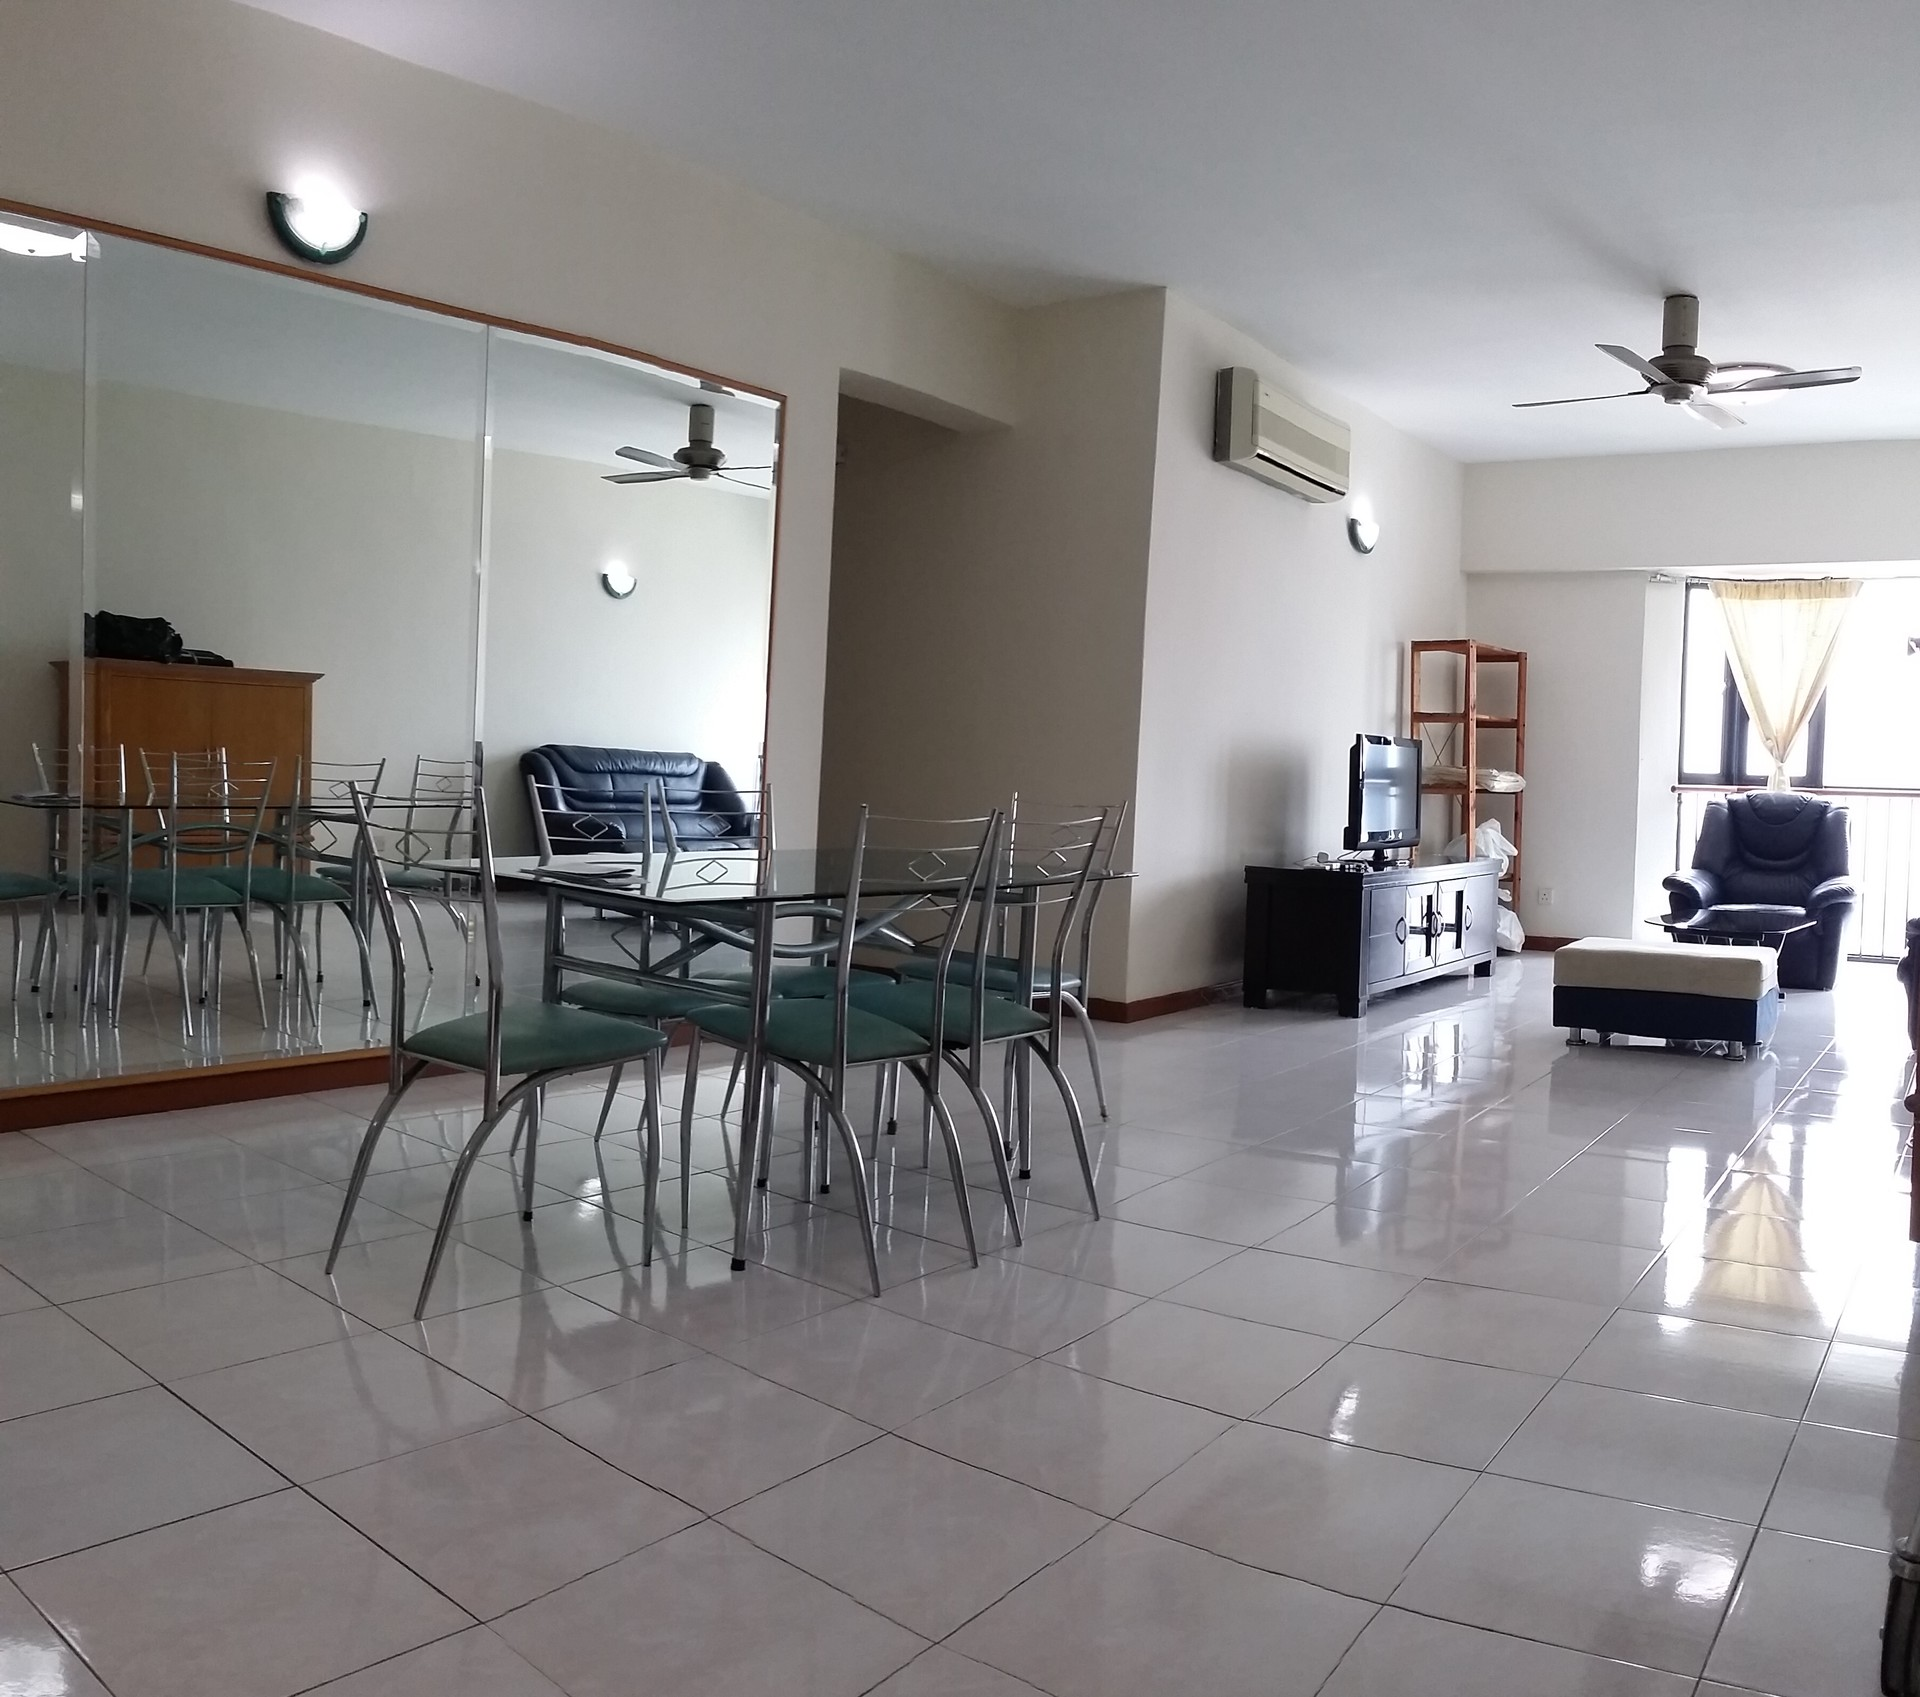 Rent A Center Living Room Set Malaysia Kuala Lumpur City Center Condominium Furnished Room For